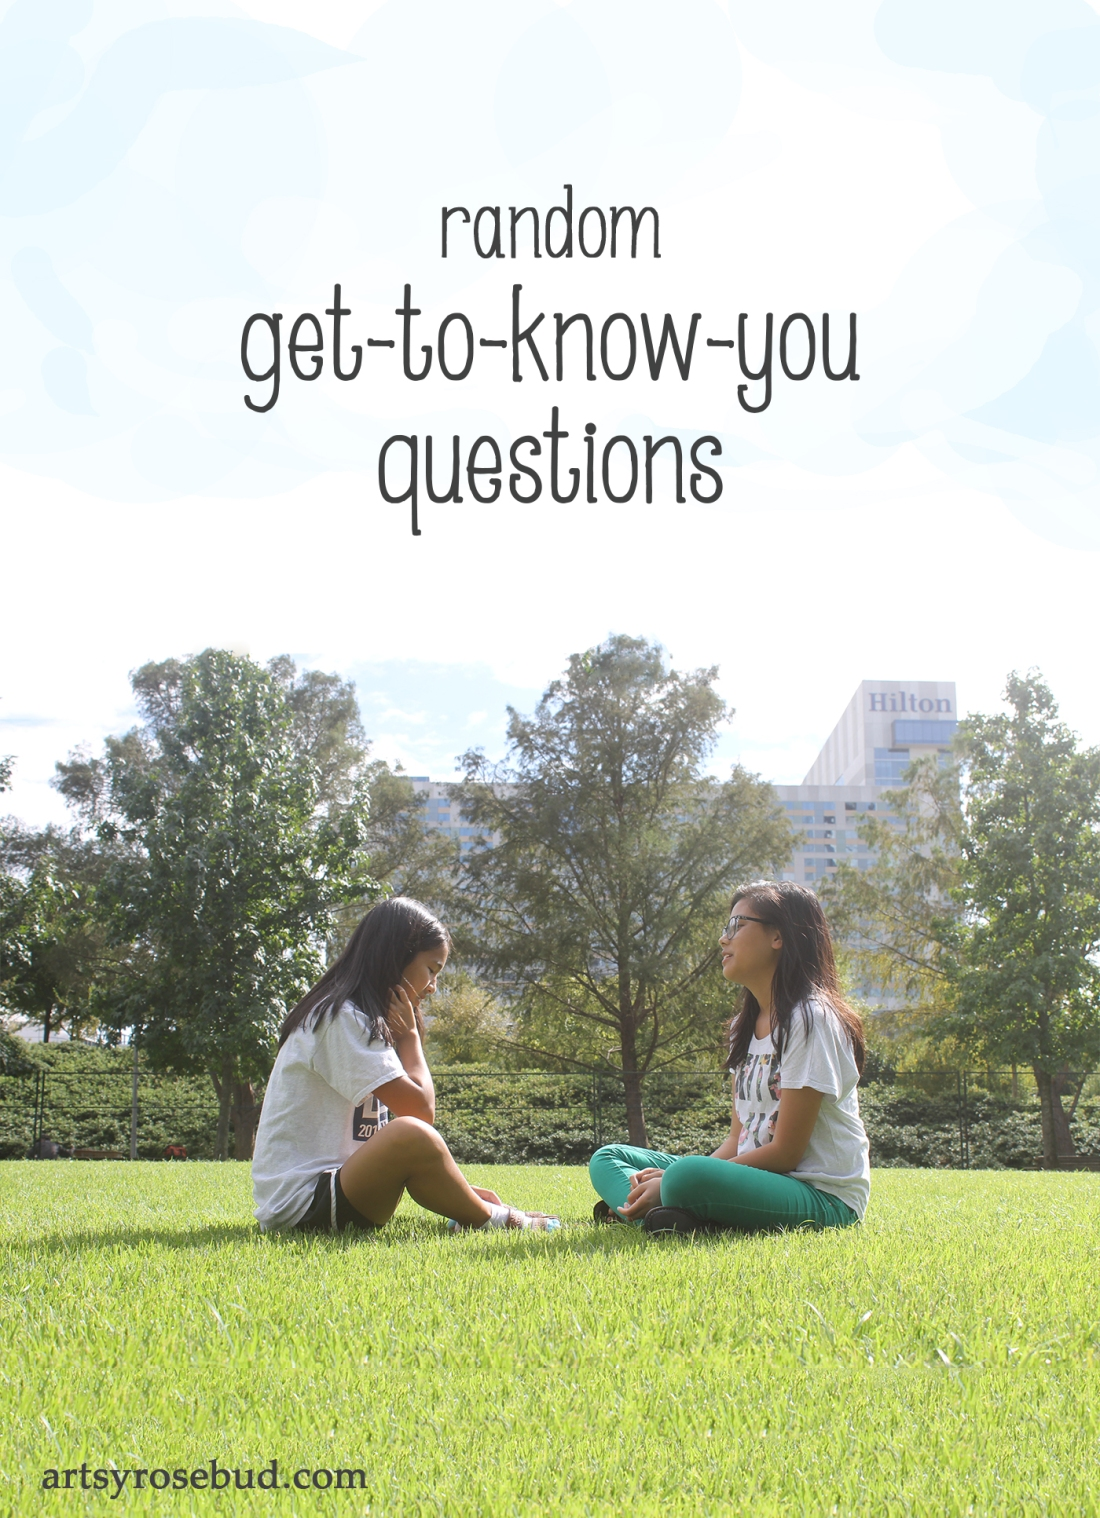 Random Get-to-know-you questions